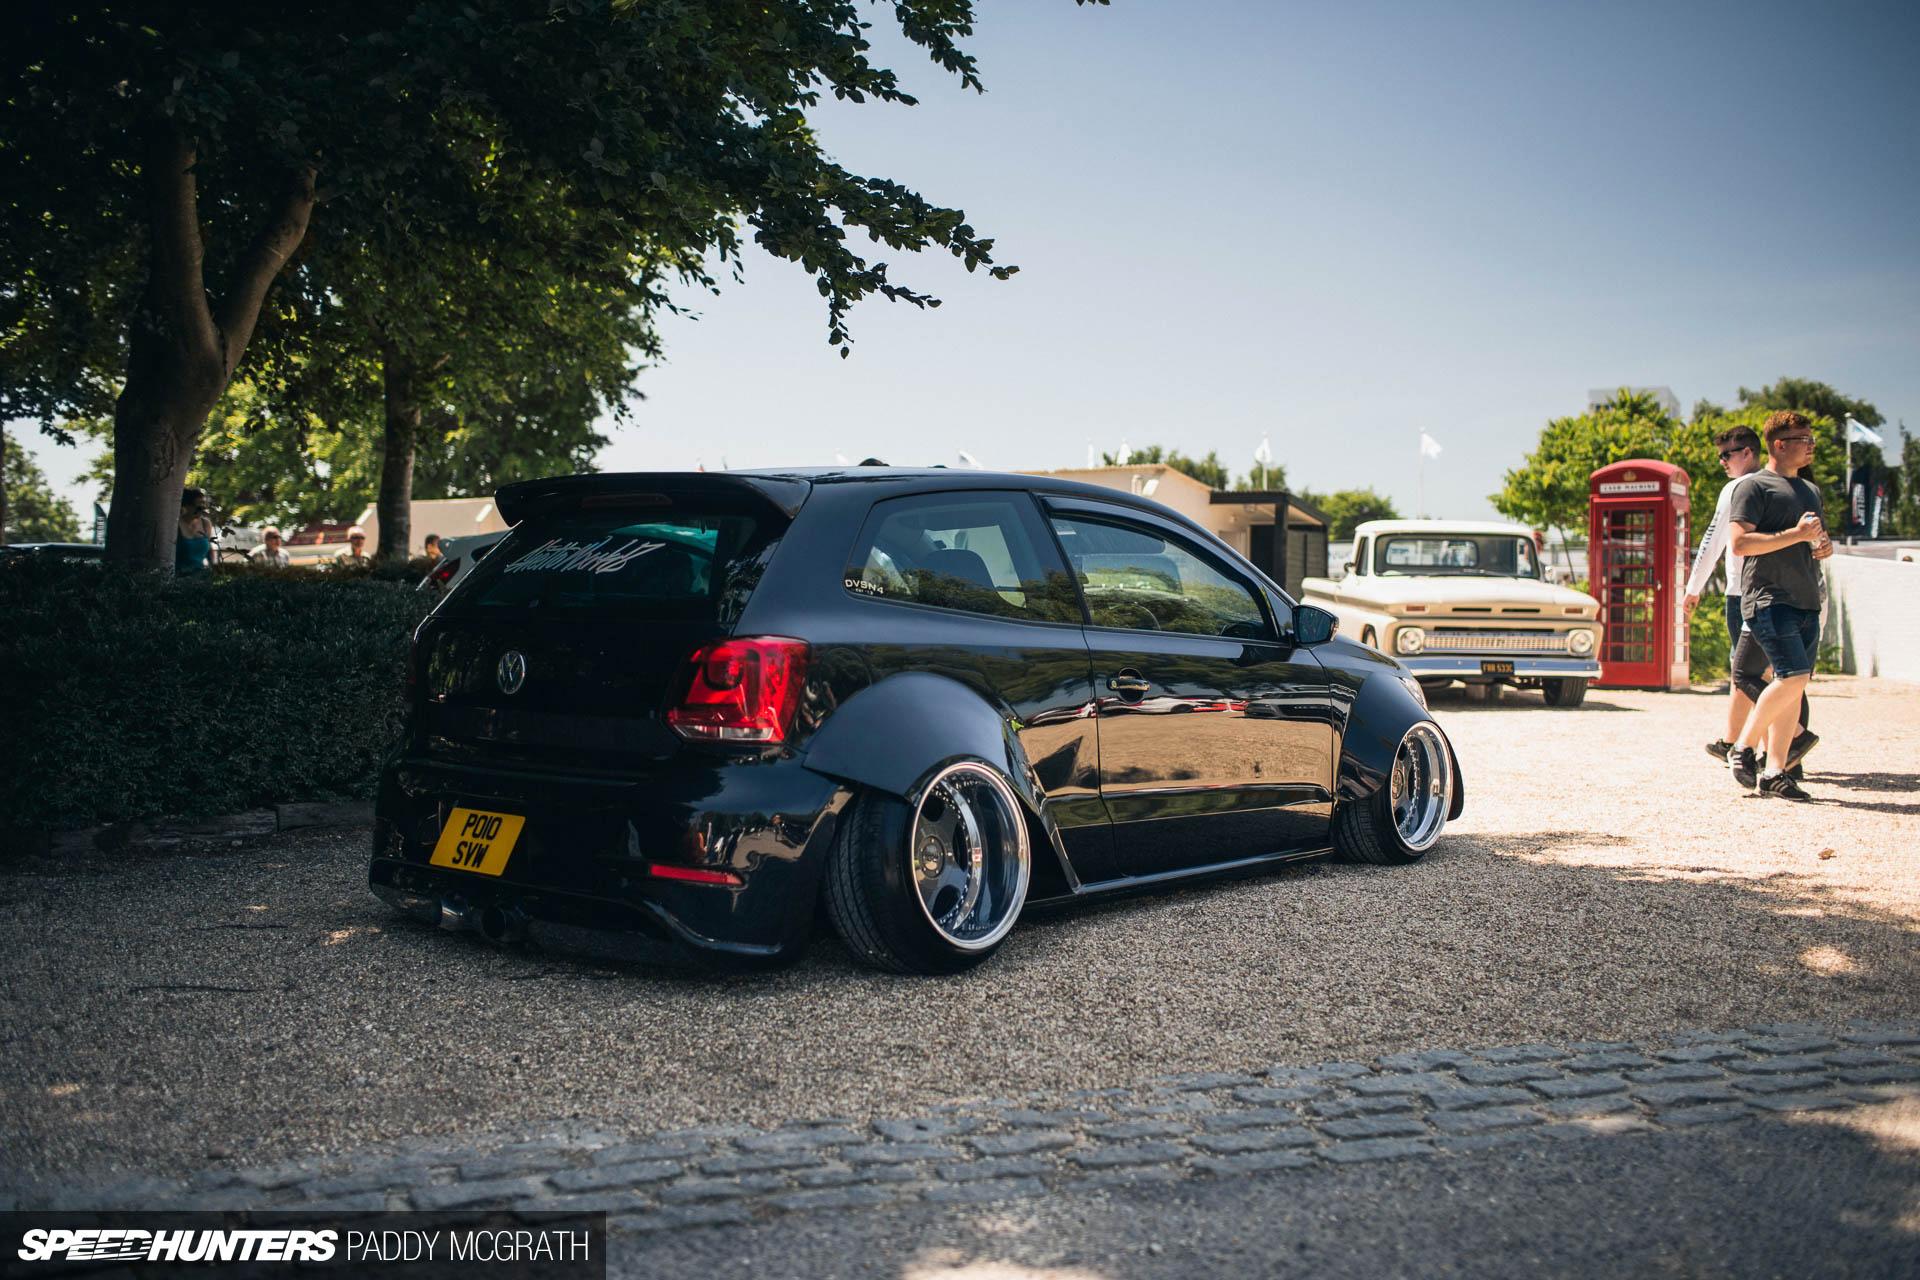 The Bosotan Volkswagen Polo Speedhunters